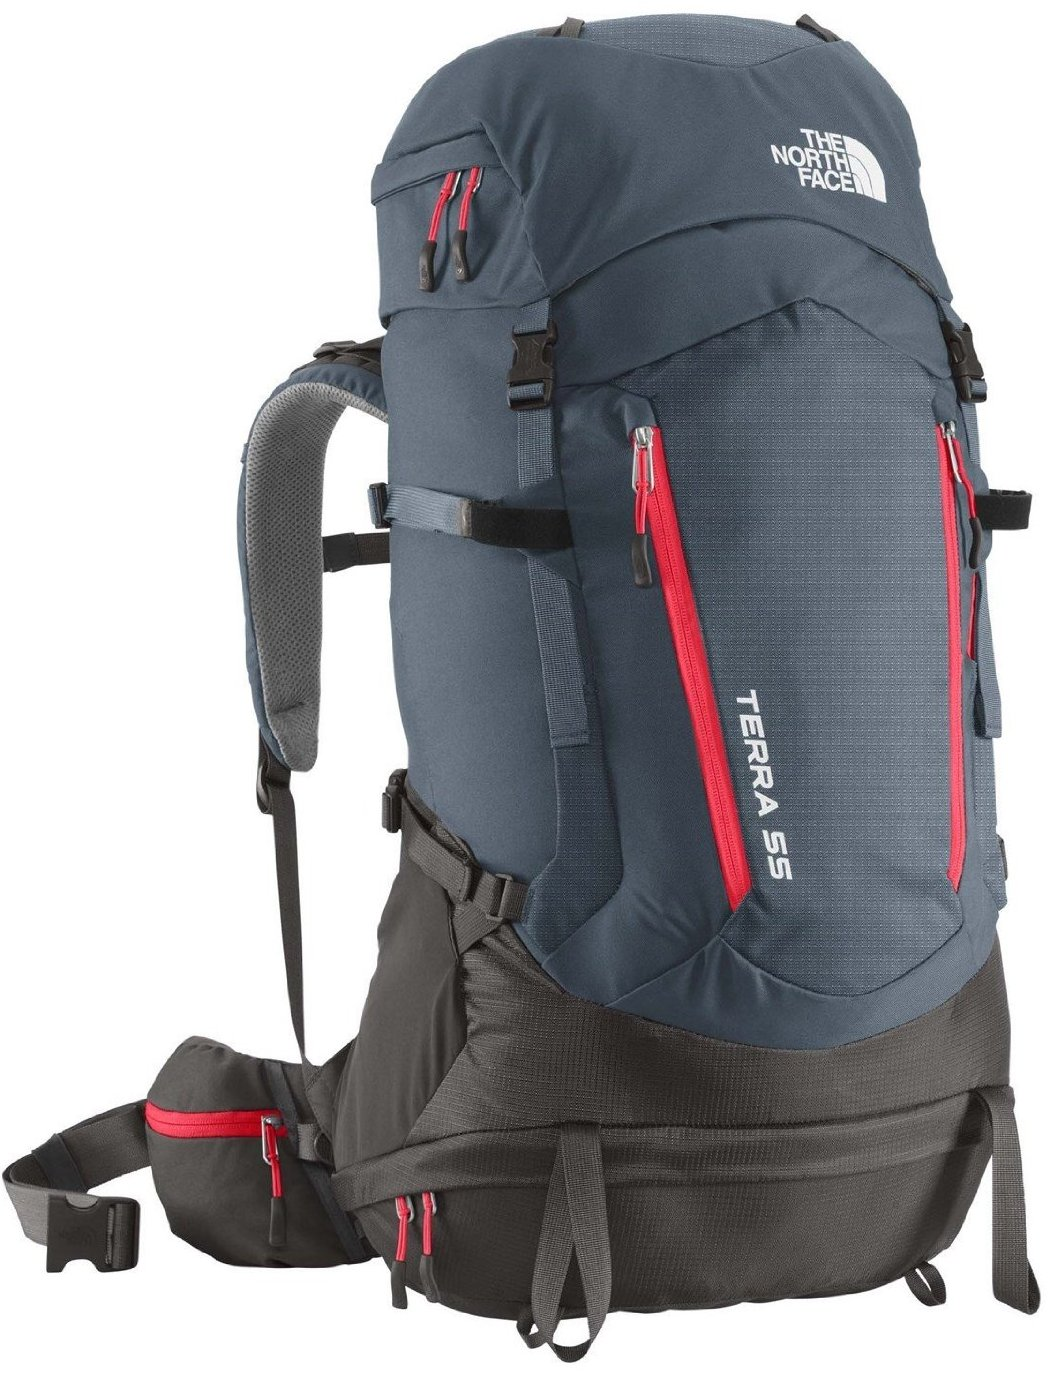 Best Backpacks For Hiking Mhsp6Bic